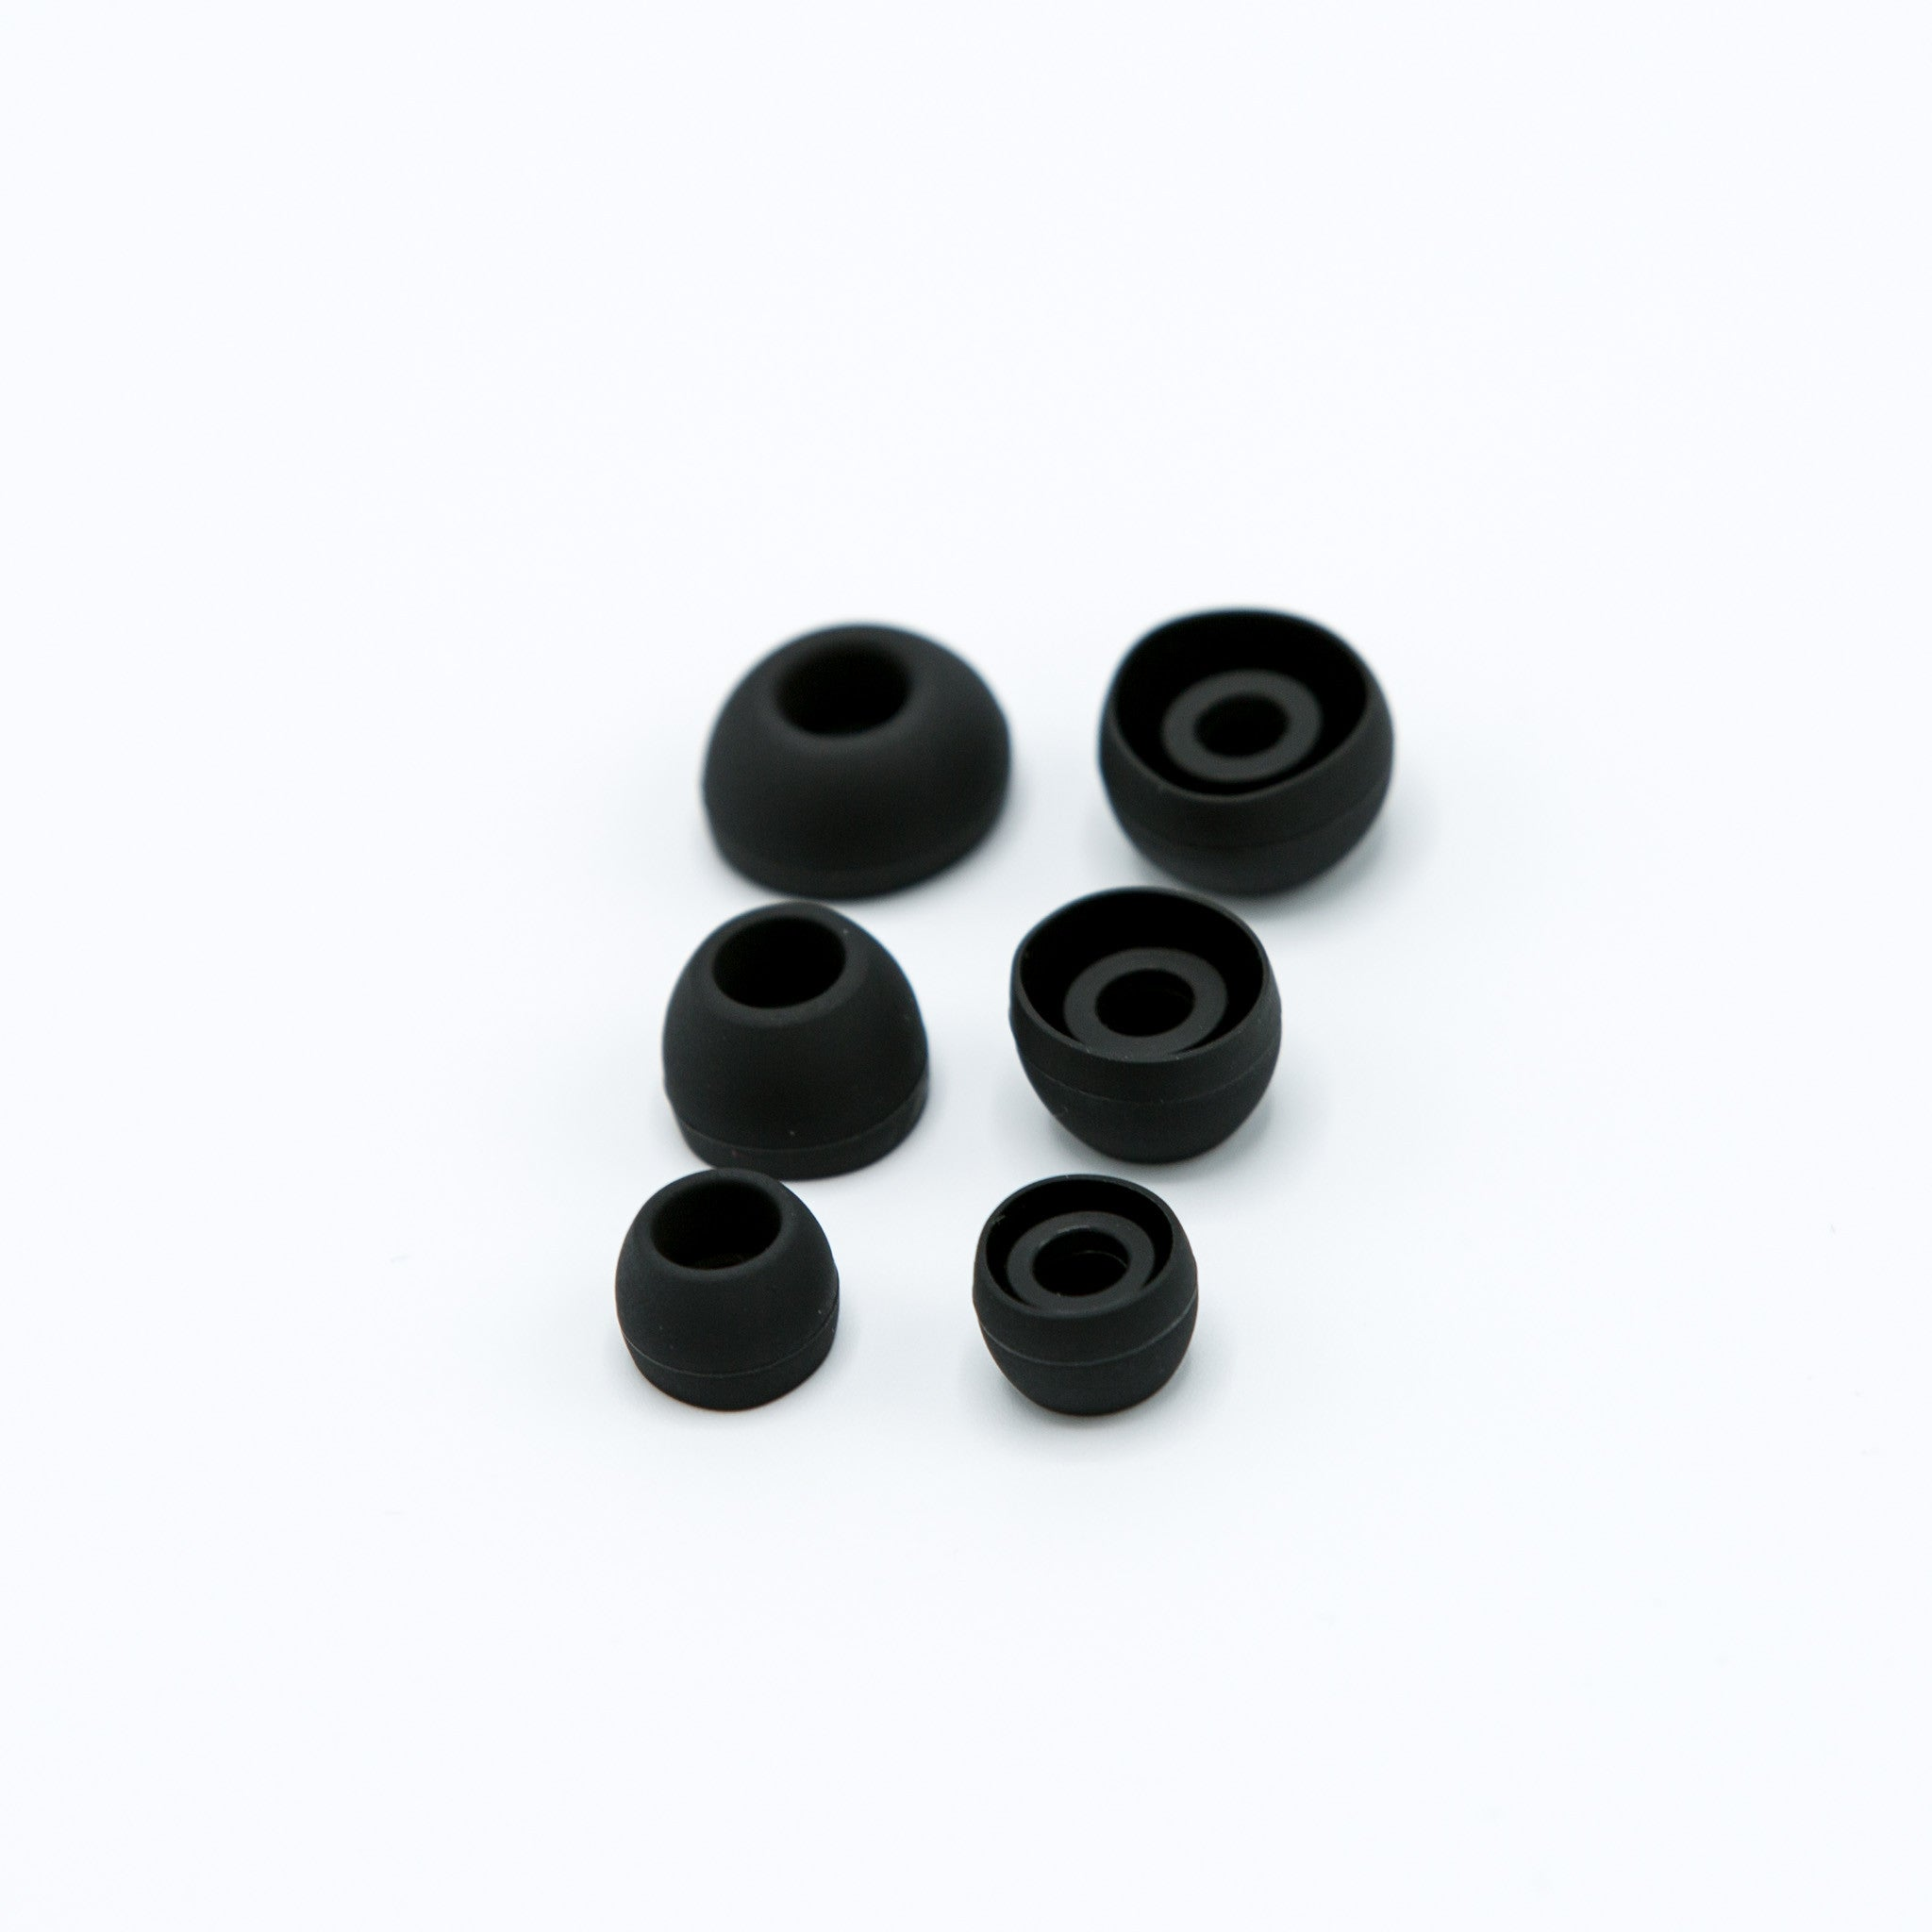 Black Silicone Earbud Tips